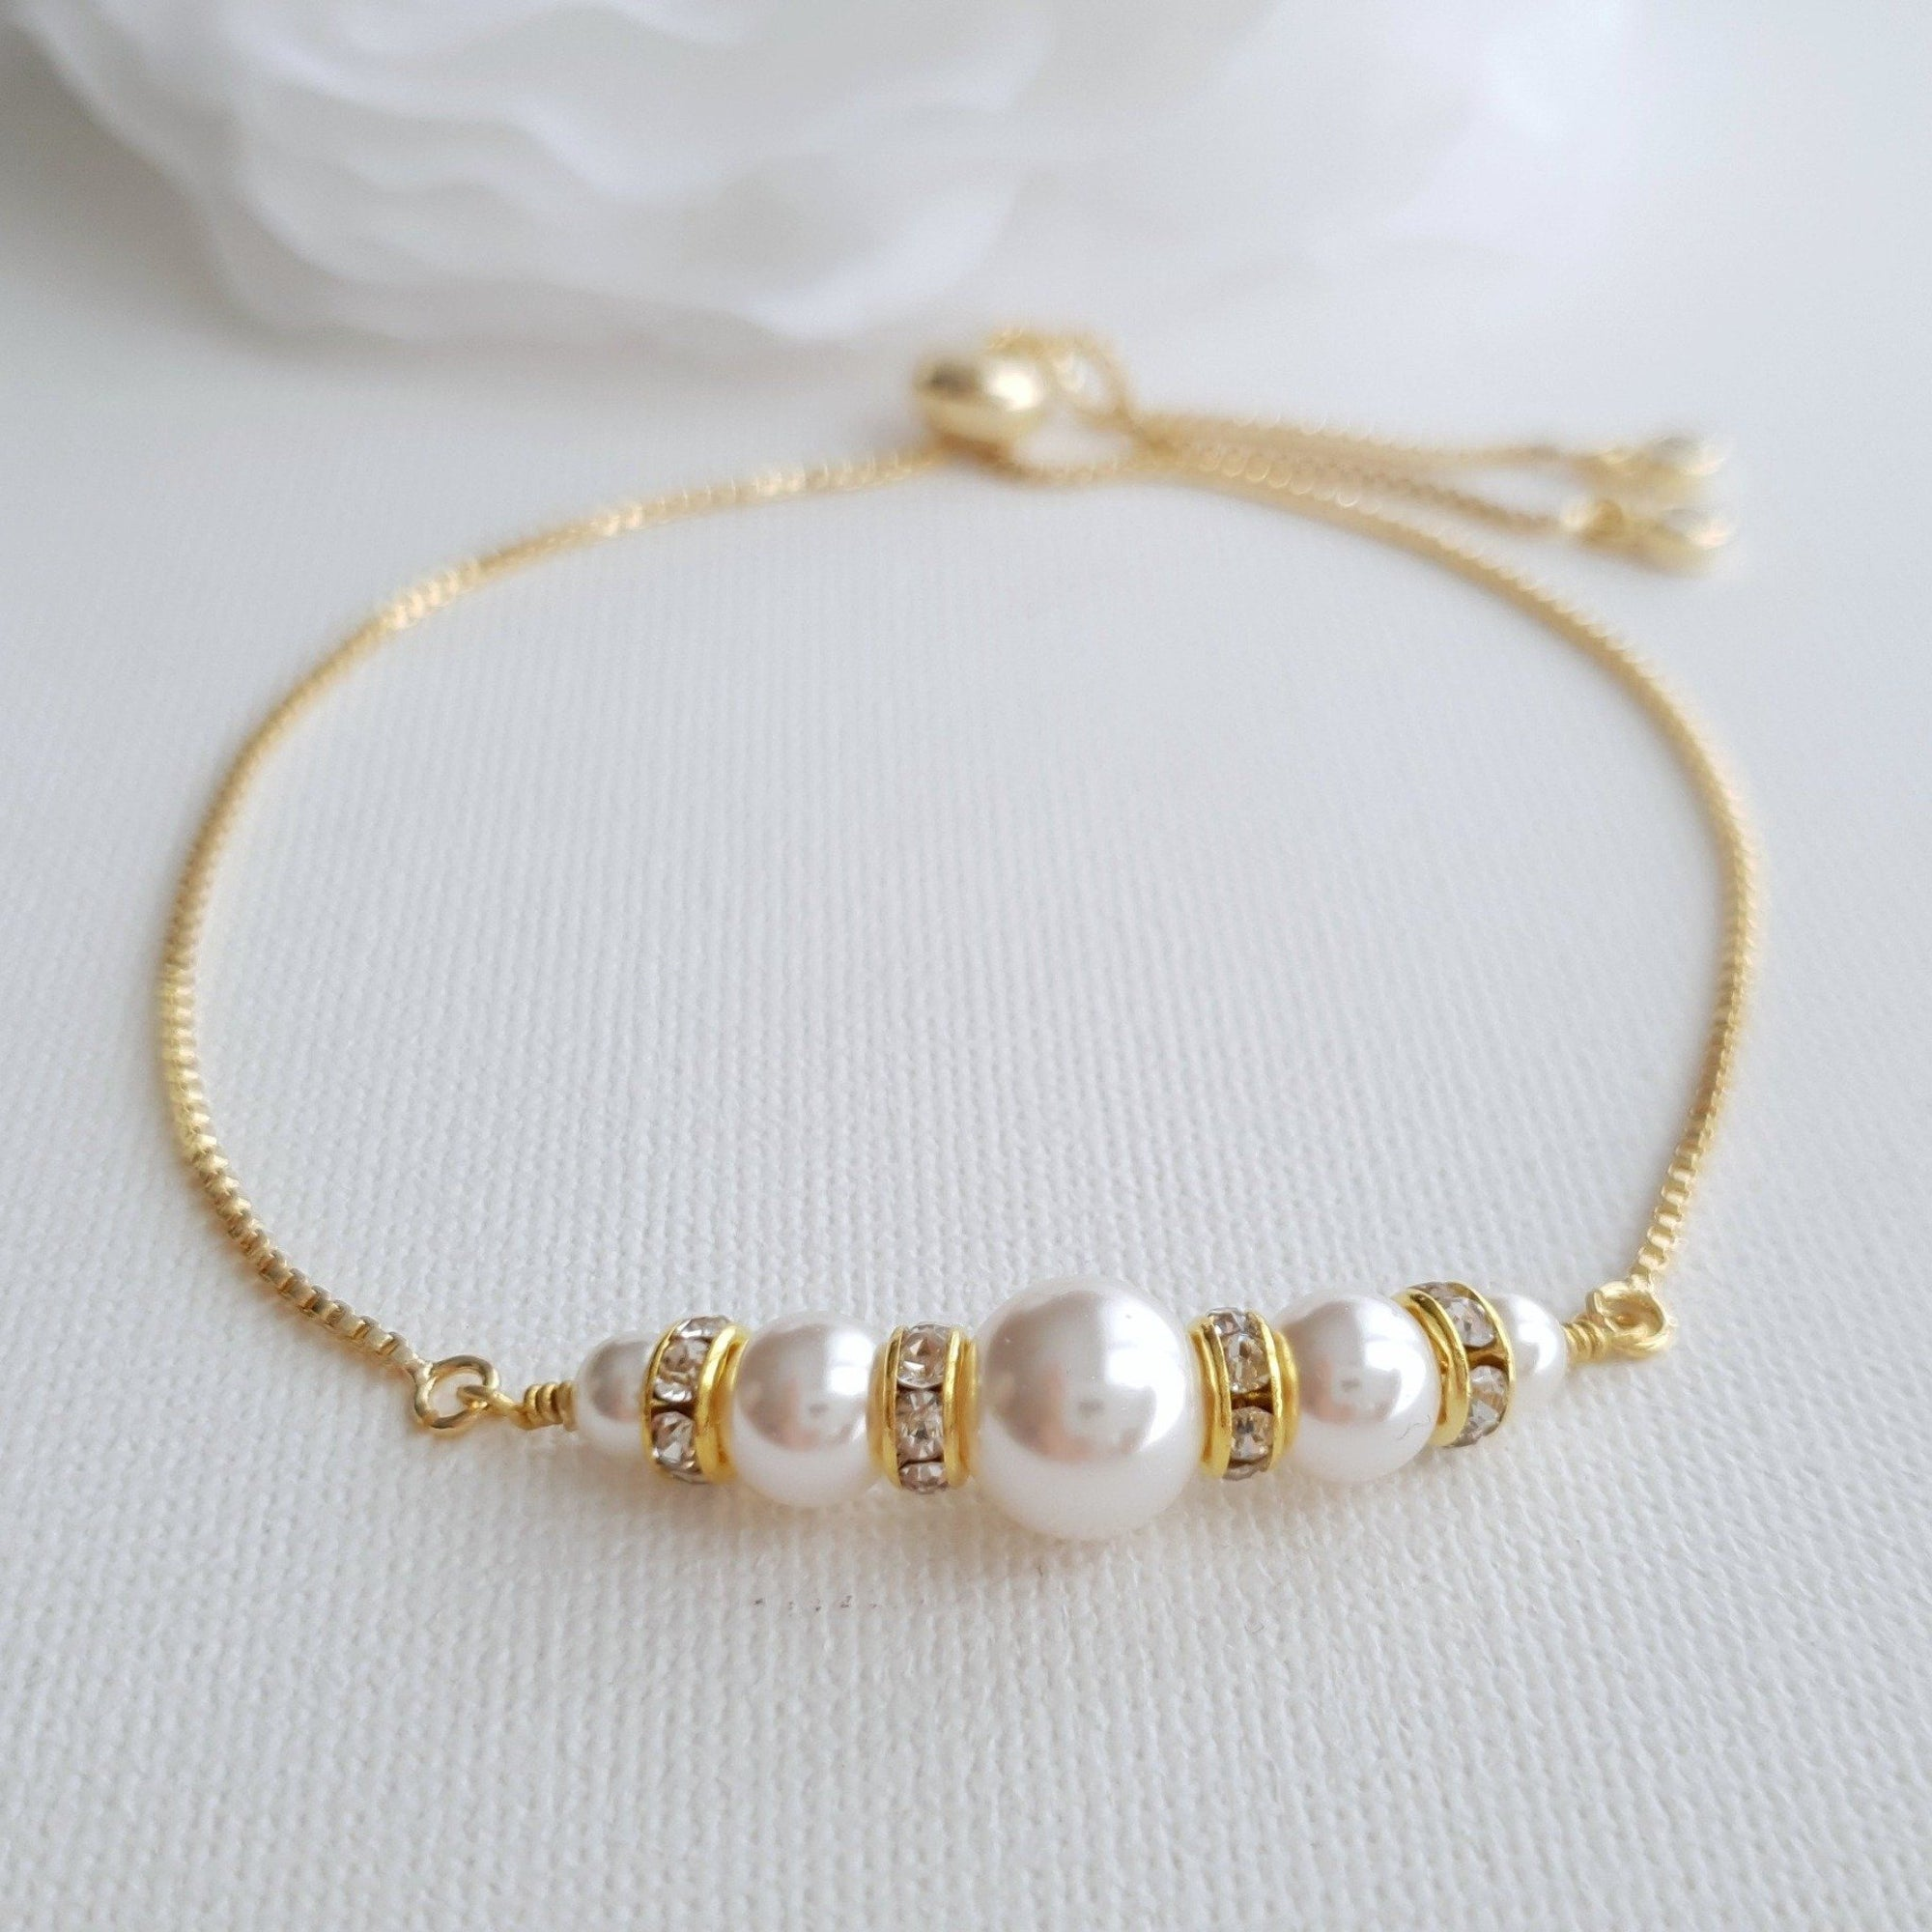 Gold and Pearl Bracelet With Sliders & Adjustable